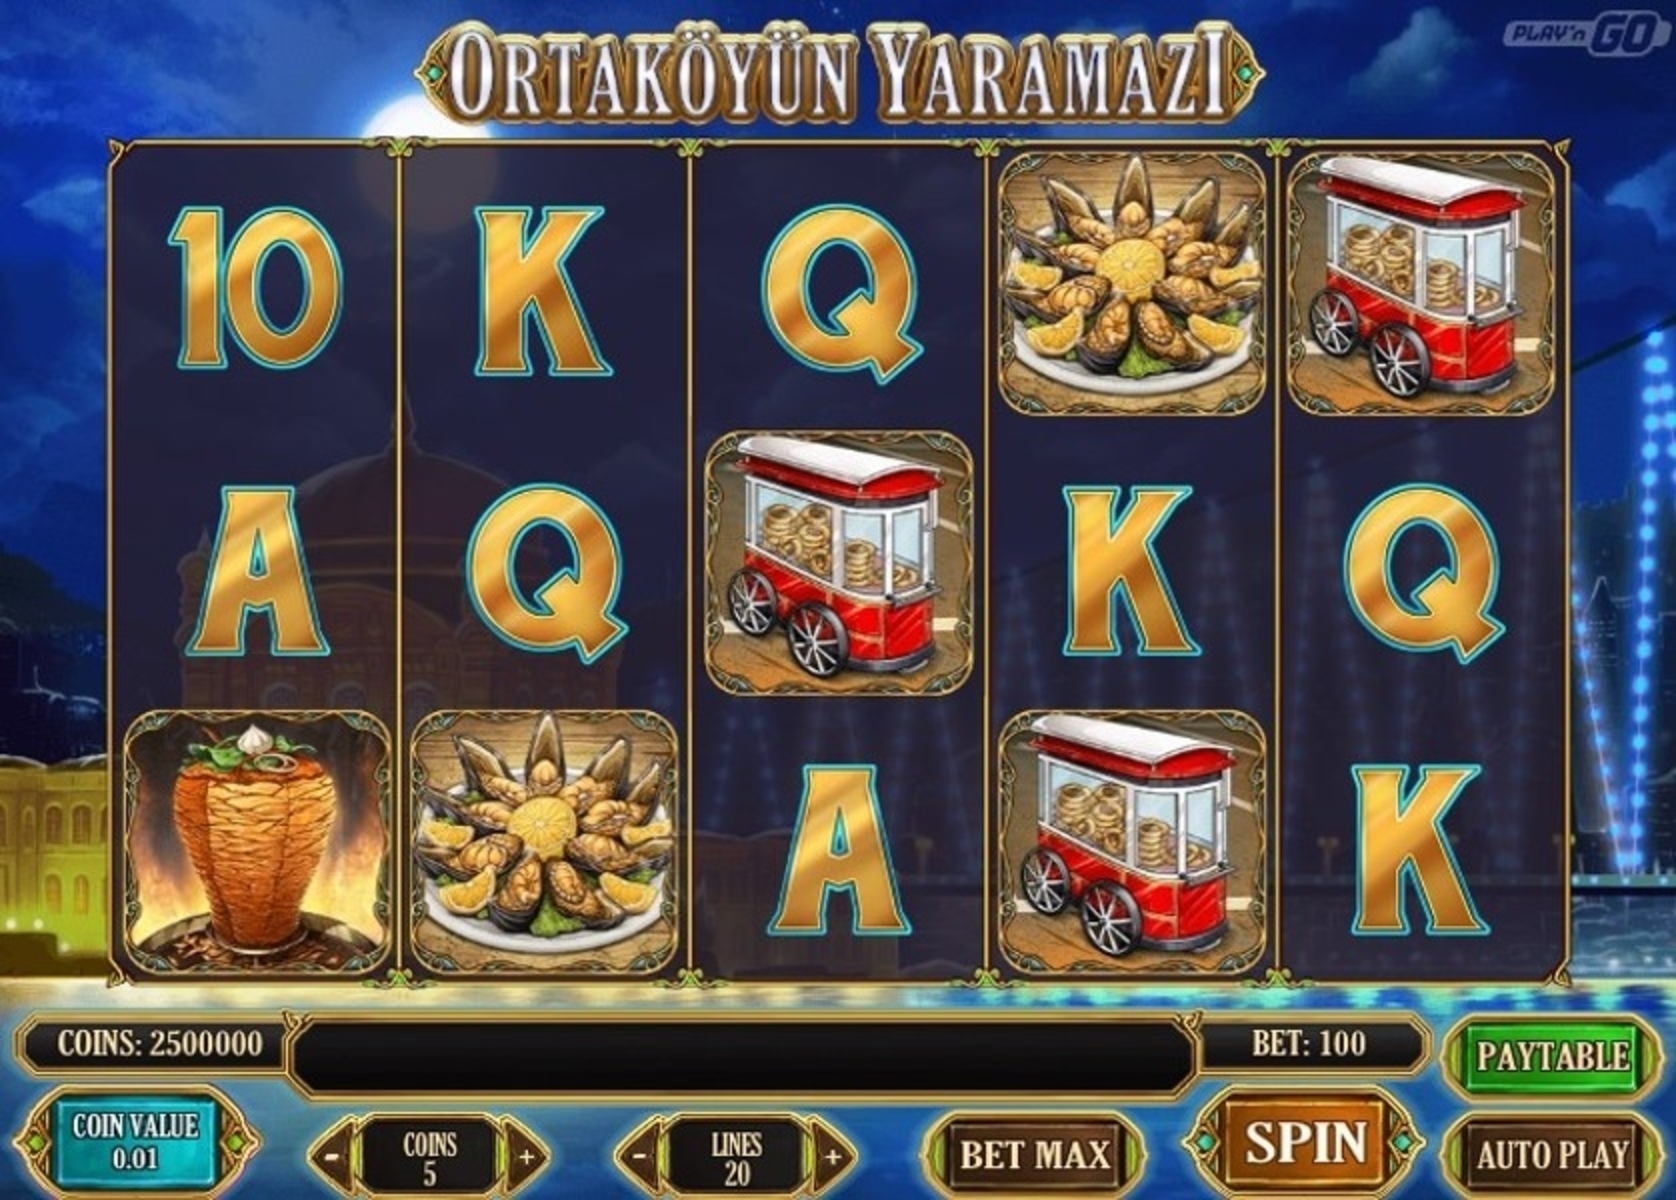 The Ortaköyün Yaramazi Online Slot Demo Game by Playn GO